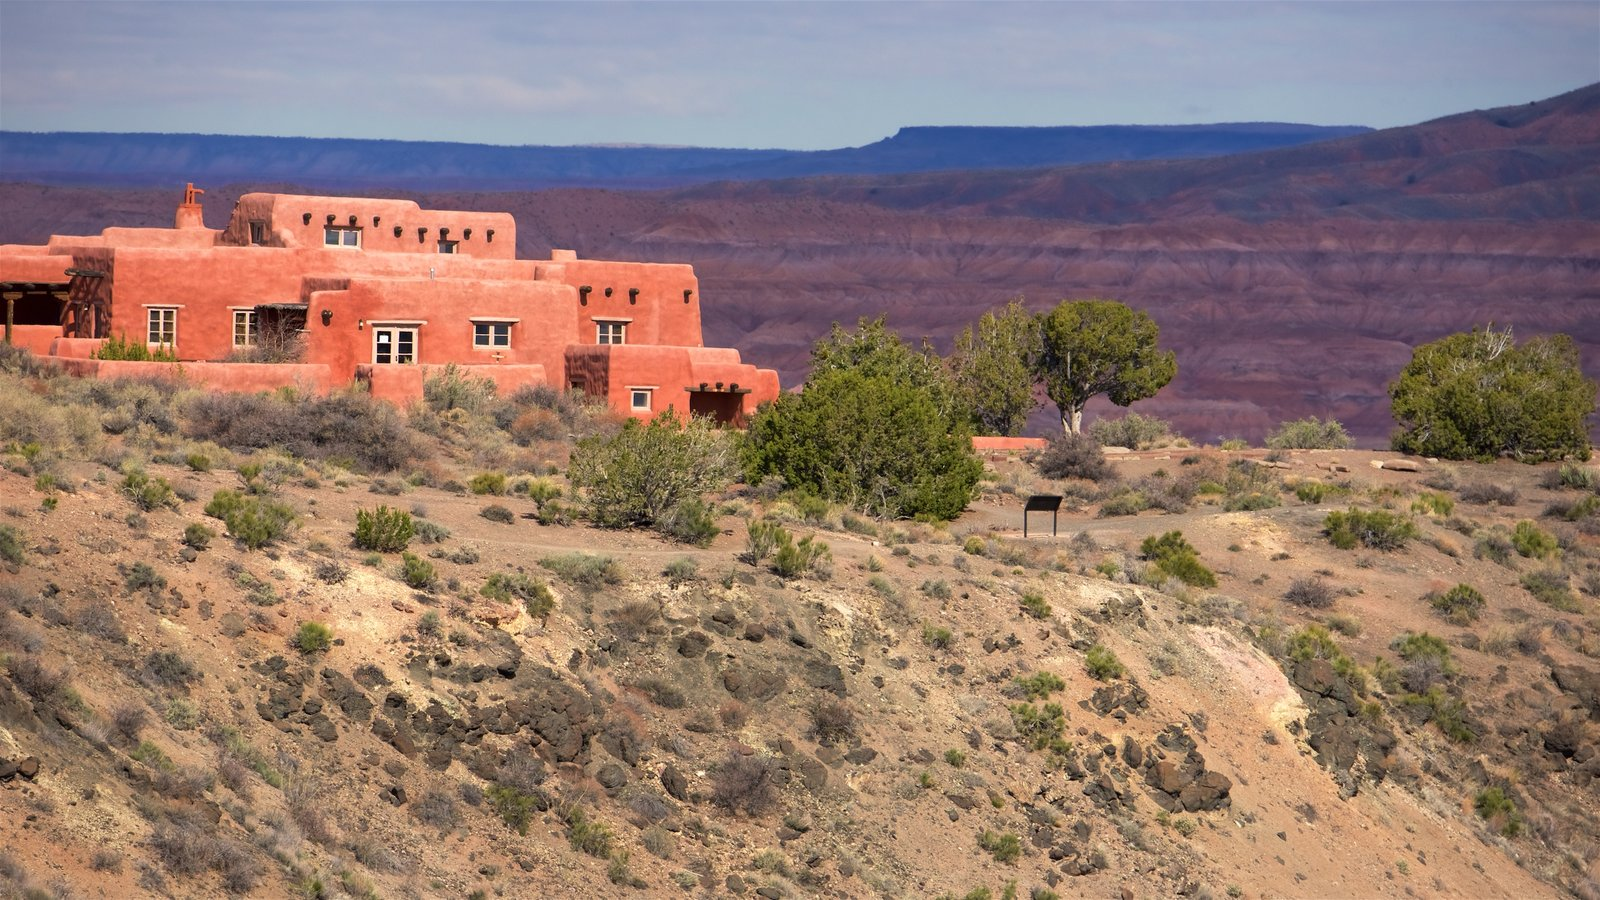 Petrified Forest National Park Showing A Hotel Desert Views And Tranquil Scenes